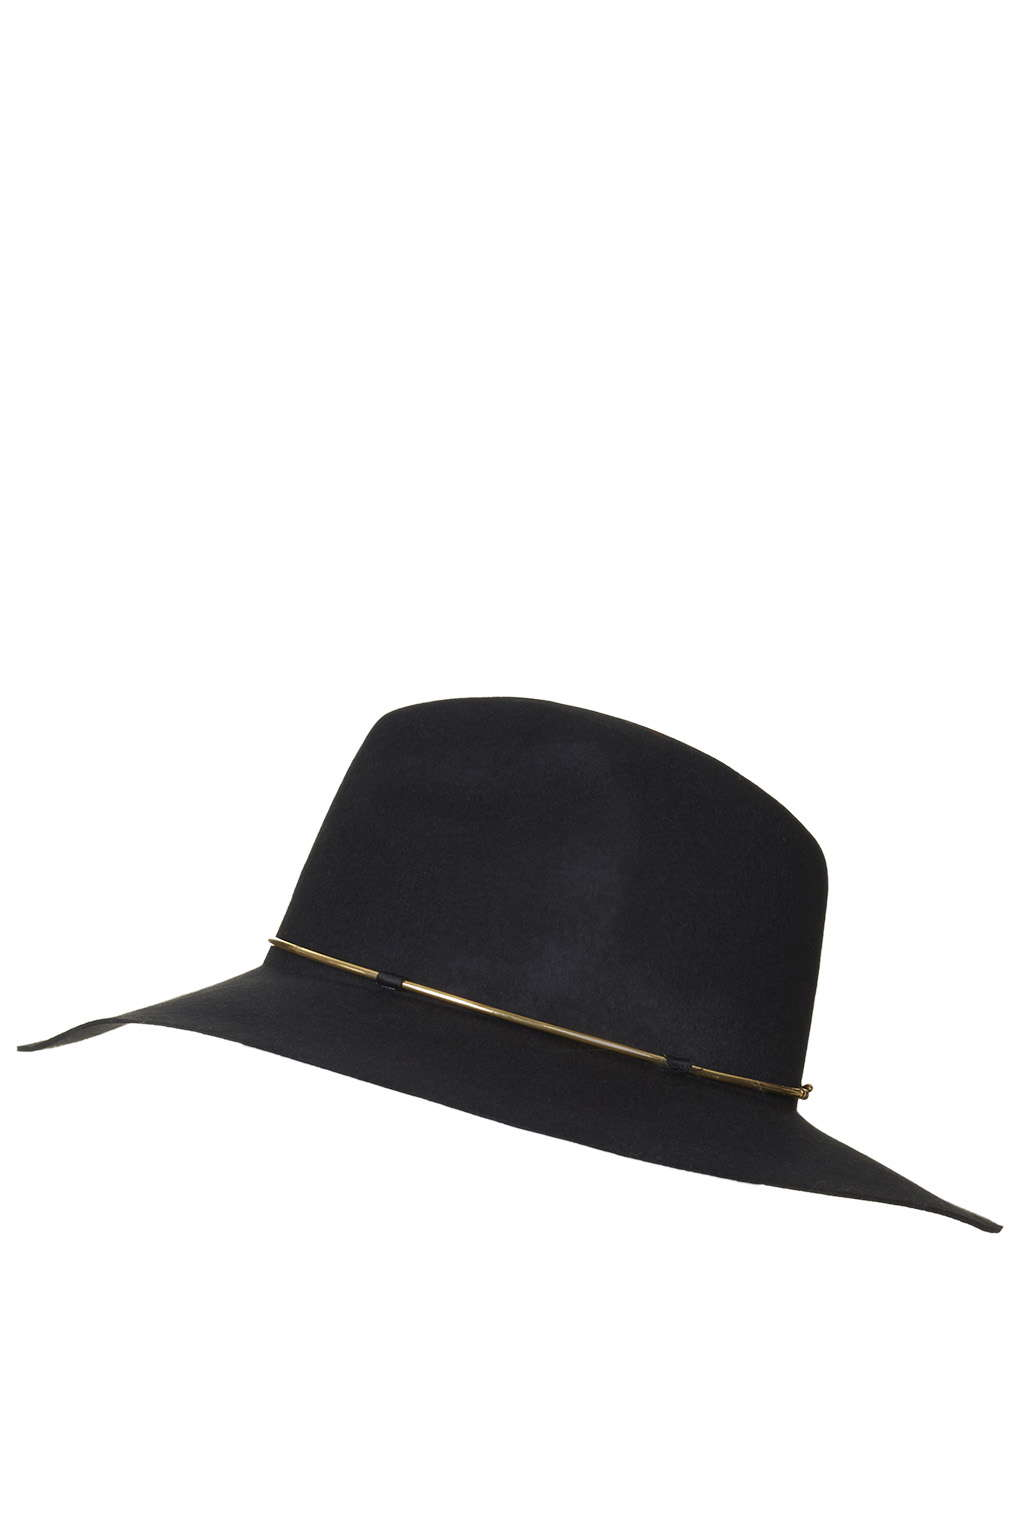 Top Shop Hat